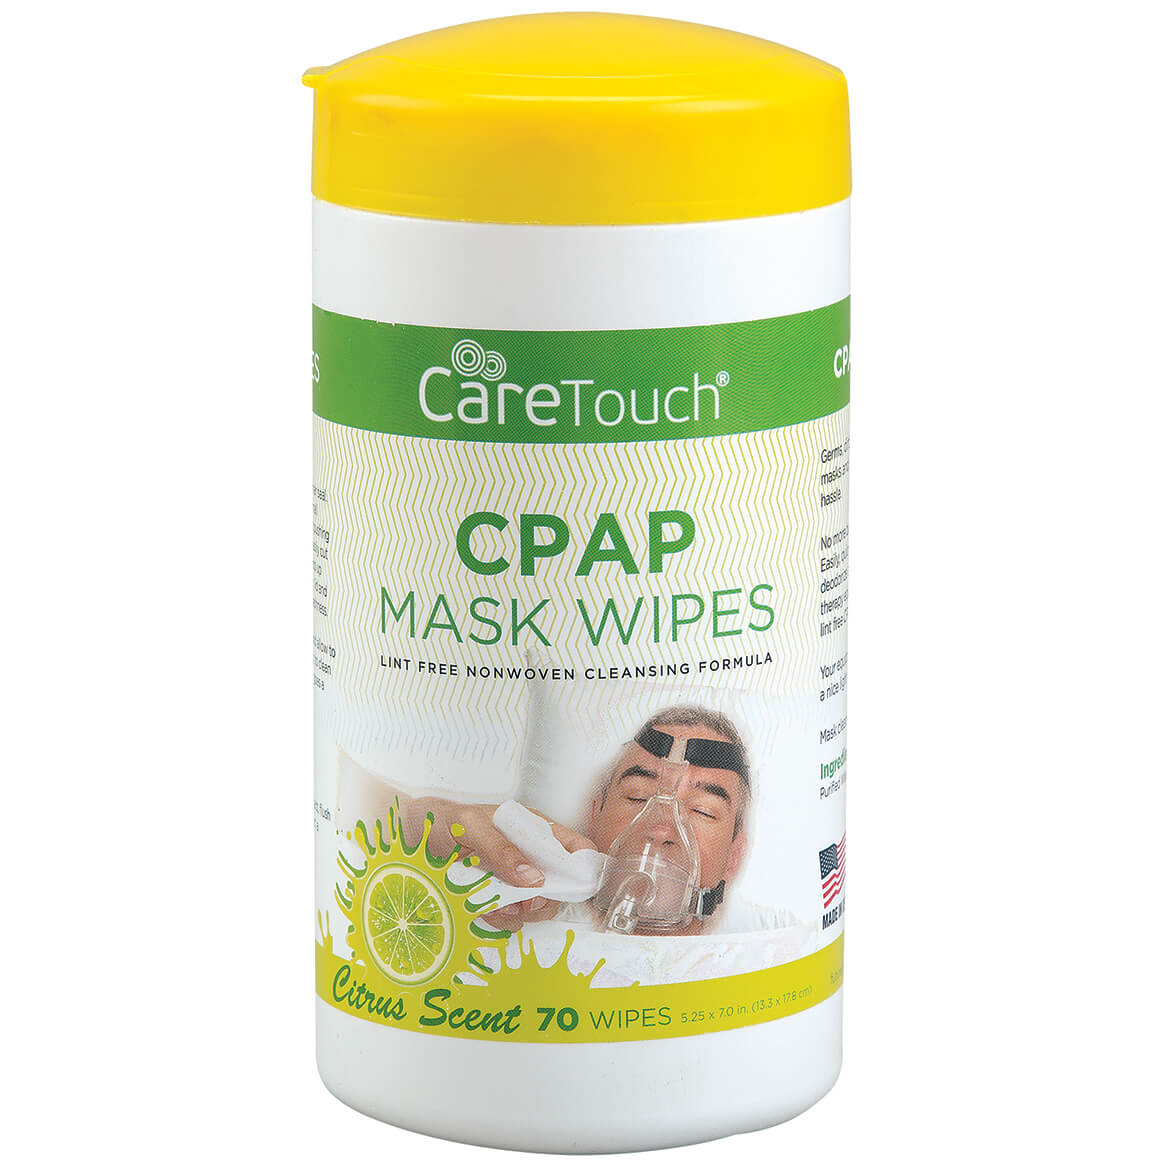 Lint-Free CPAP Mask Wipes-371597